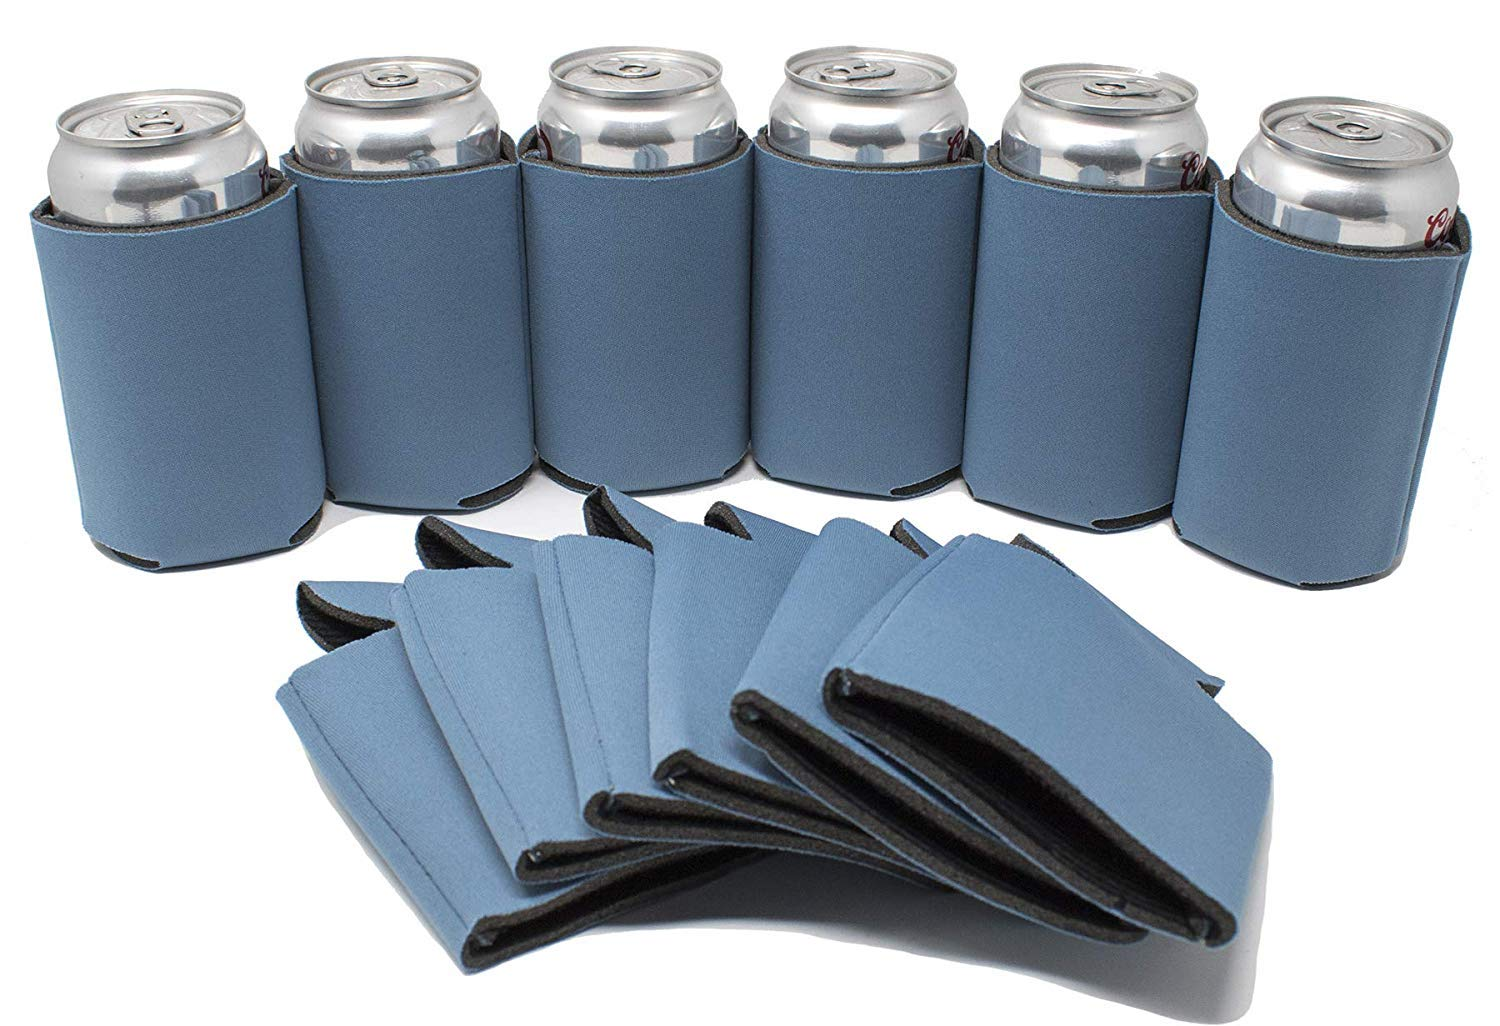 TahoeBay 12 Blank Beer Can Coolers, Plain Bulk Collapsible Soda Cover Coolies, DIY Personalized Sublimation Sleeves for Weddings, Bachelorette Parties, Funny HTV Party Favors (Steel Blue, 12)